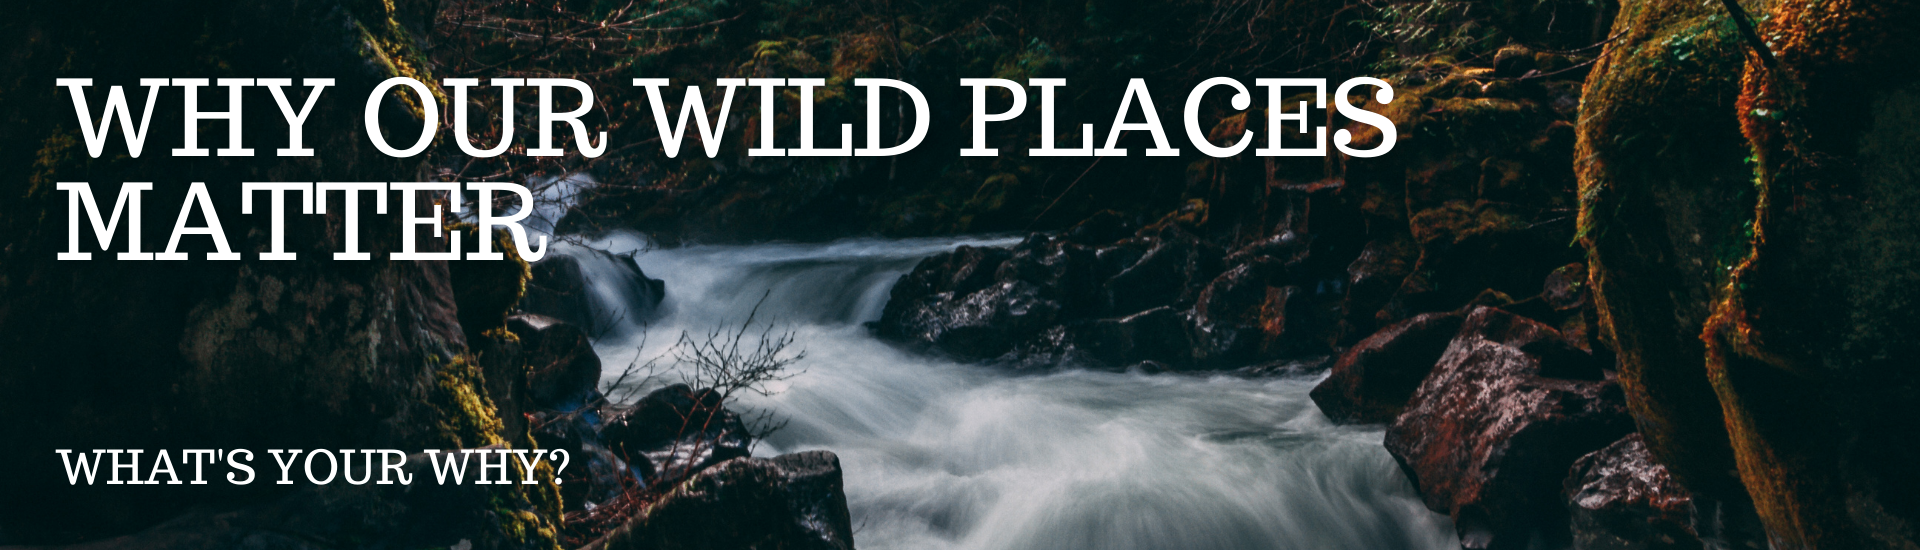 Why Wild Places Matter to You text over a flowing stream